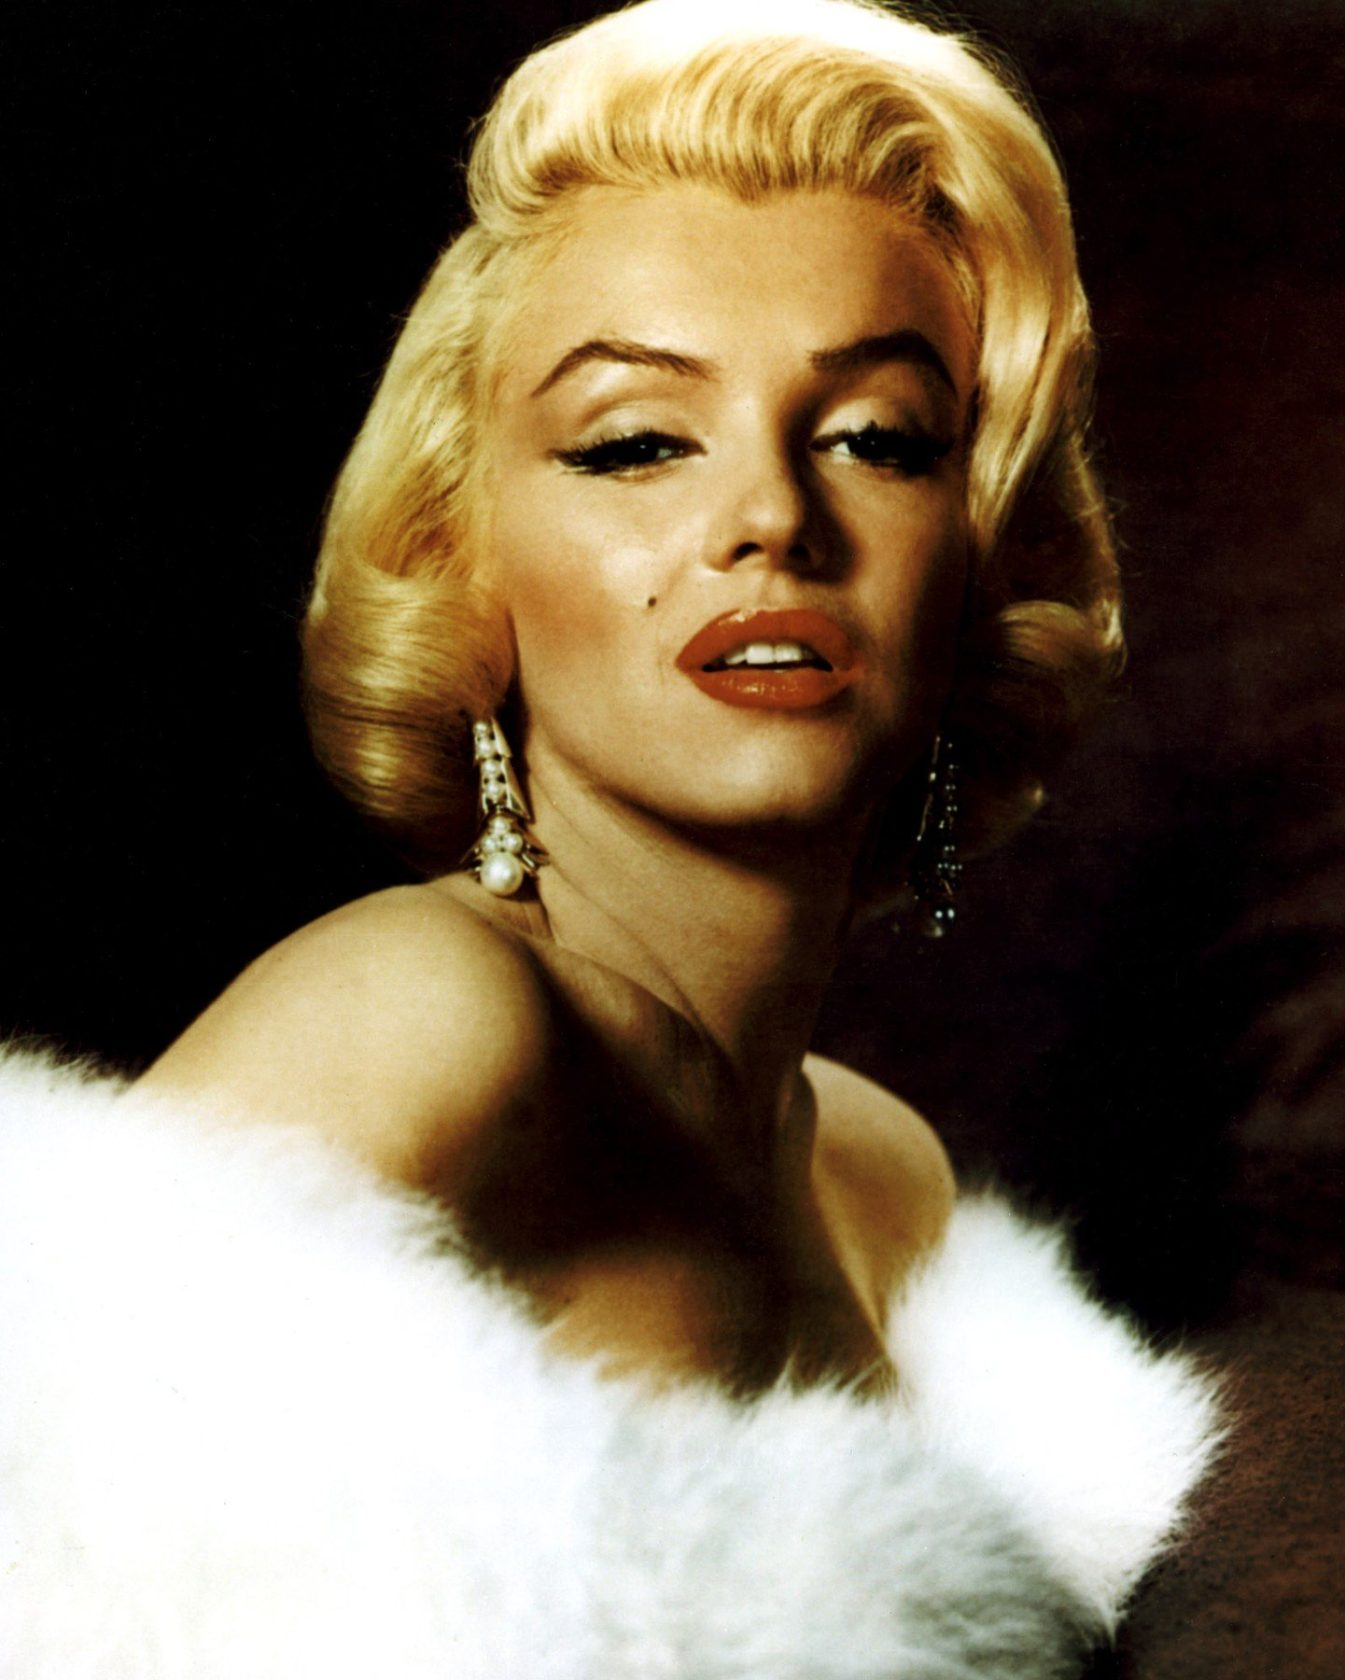 MARILYN MONROE, c. mid-1950s, Image: 98307997, License: Rights-managed, Restrictions: For usage credit please use; Courtesy Everett Collection, Model Release: no, Credit line: Profimedia, Everett